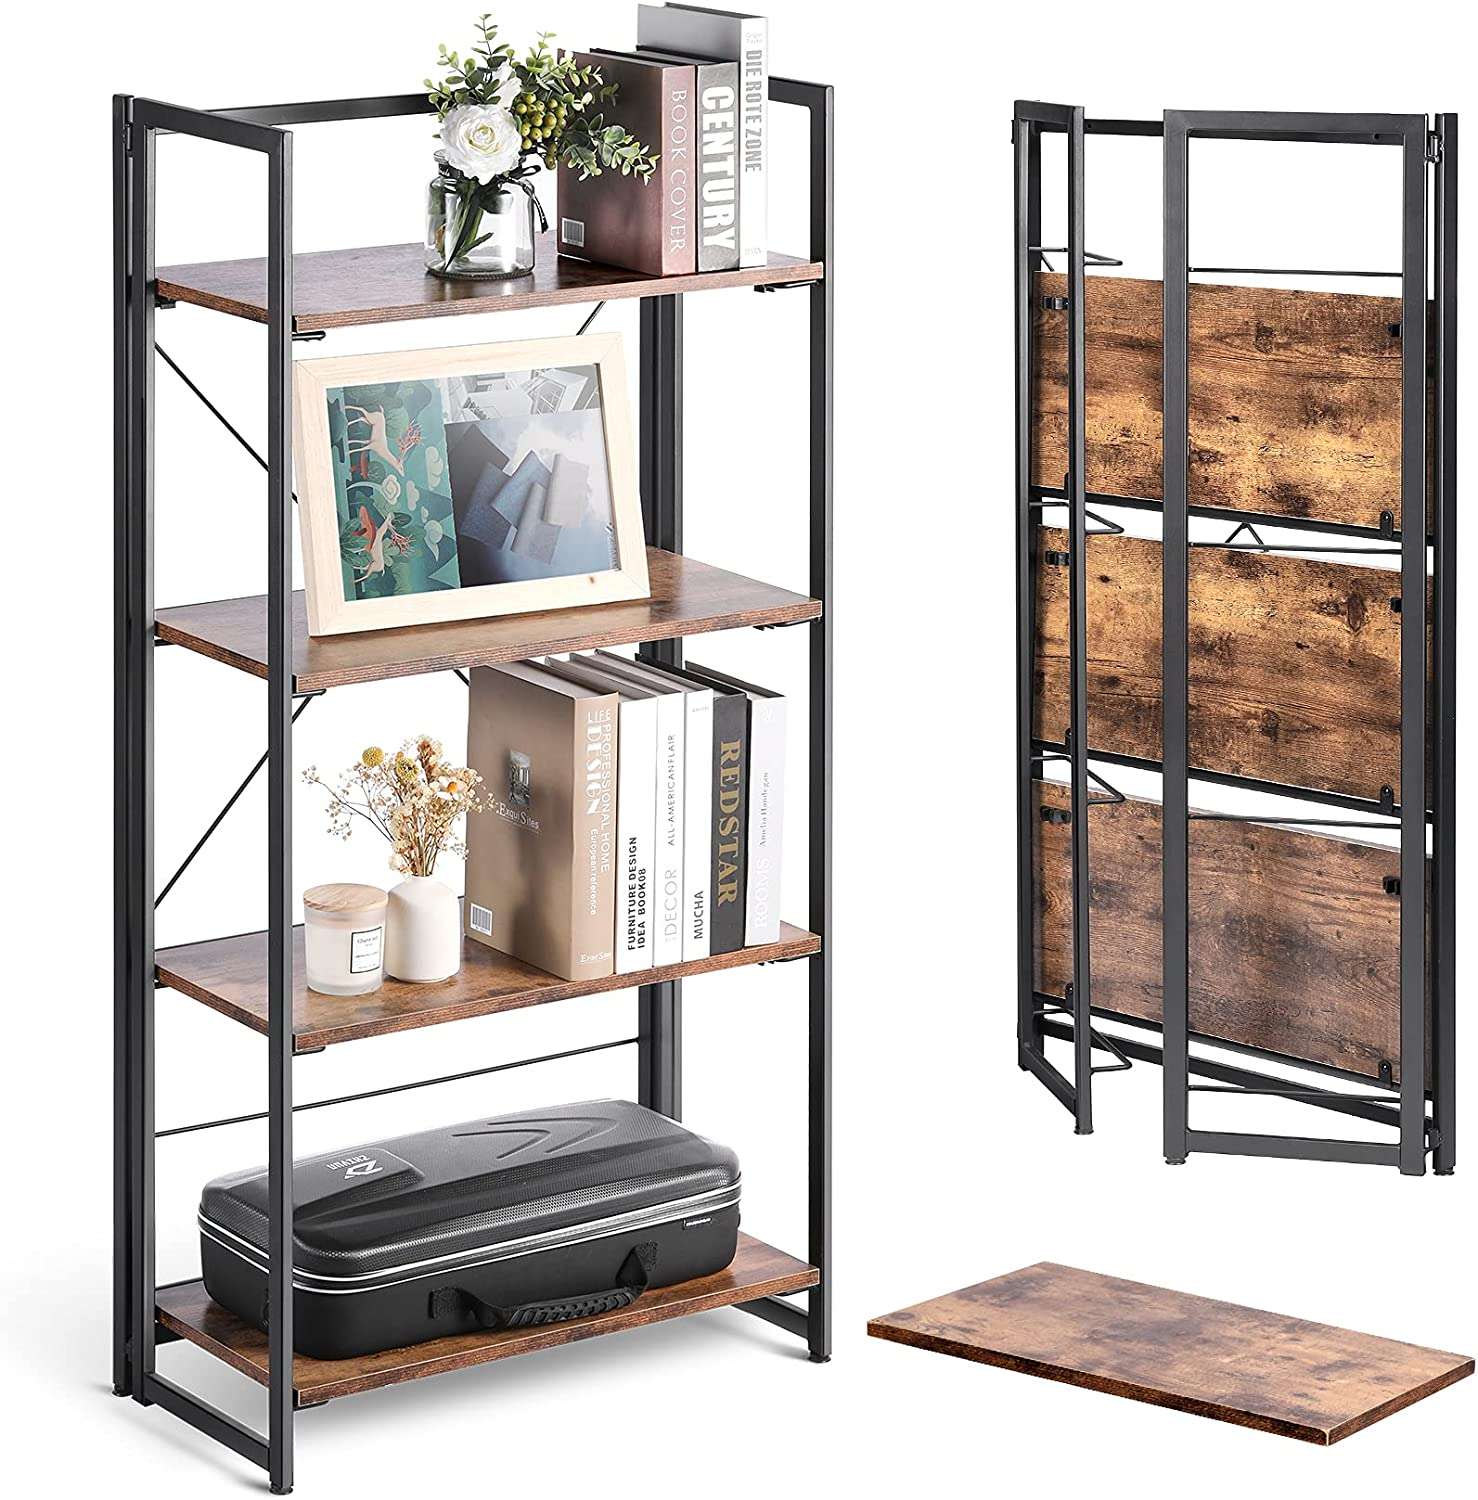 alvorog 4 Tier Folding Bookshelf No Assembly Bookcase Rustic Wood and Metal Frame Book Shelves, Industrial Accent Furniture, Storage Shelves for Living Room, Office, Bedroom and Kitchen